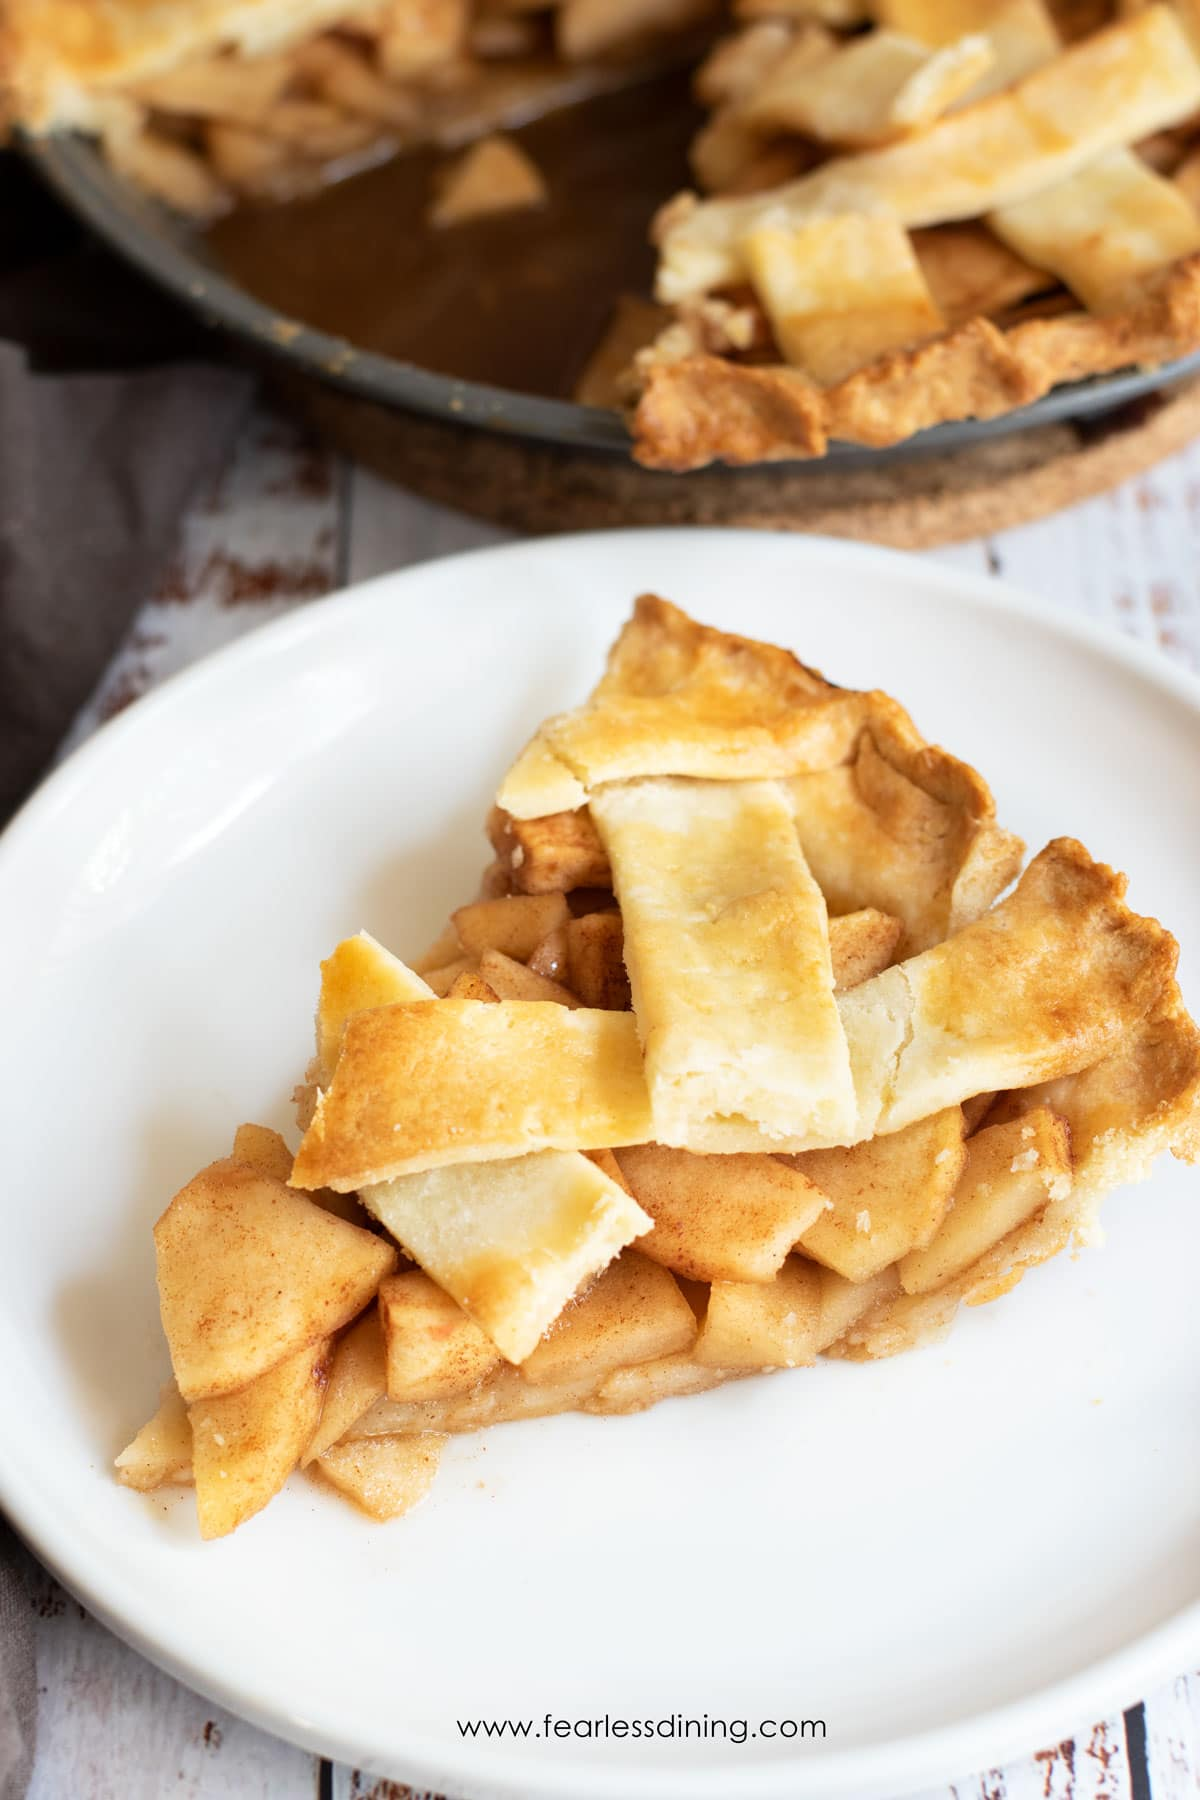 a slice of apple pie with a lattice crust on a plate